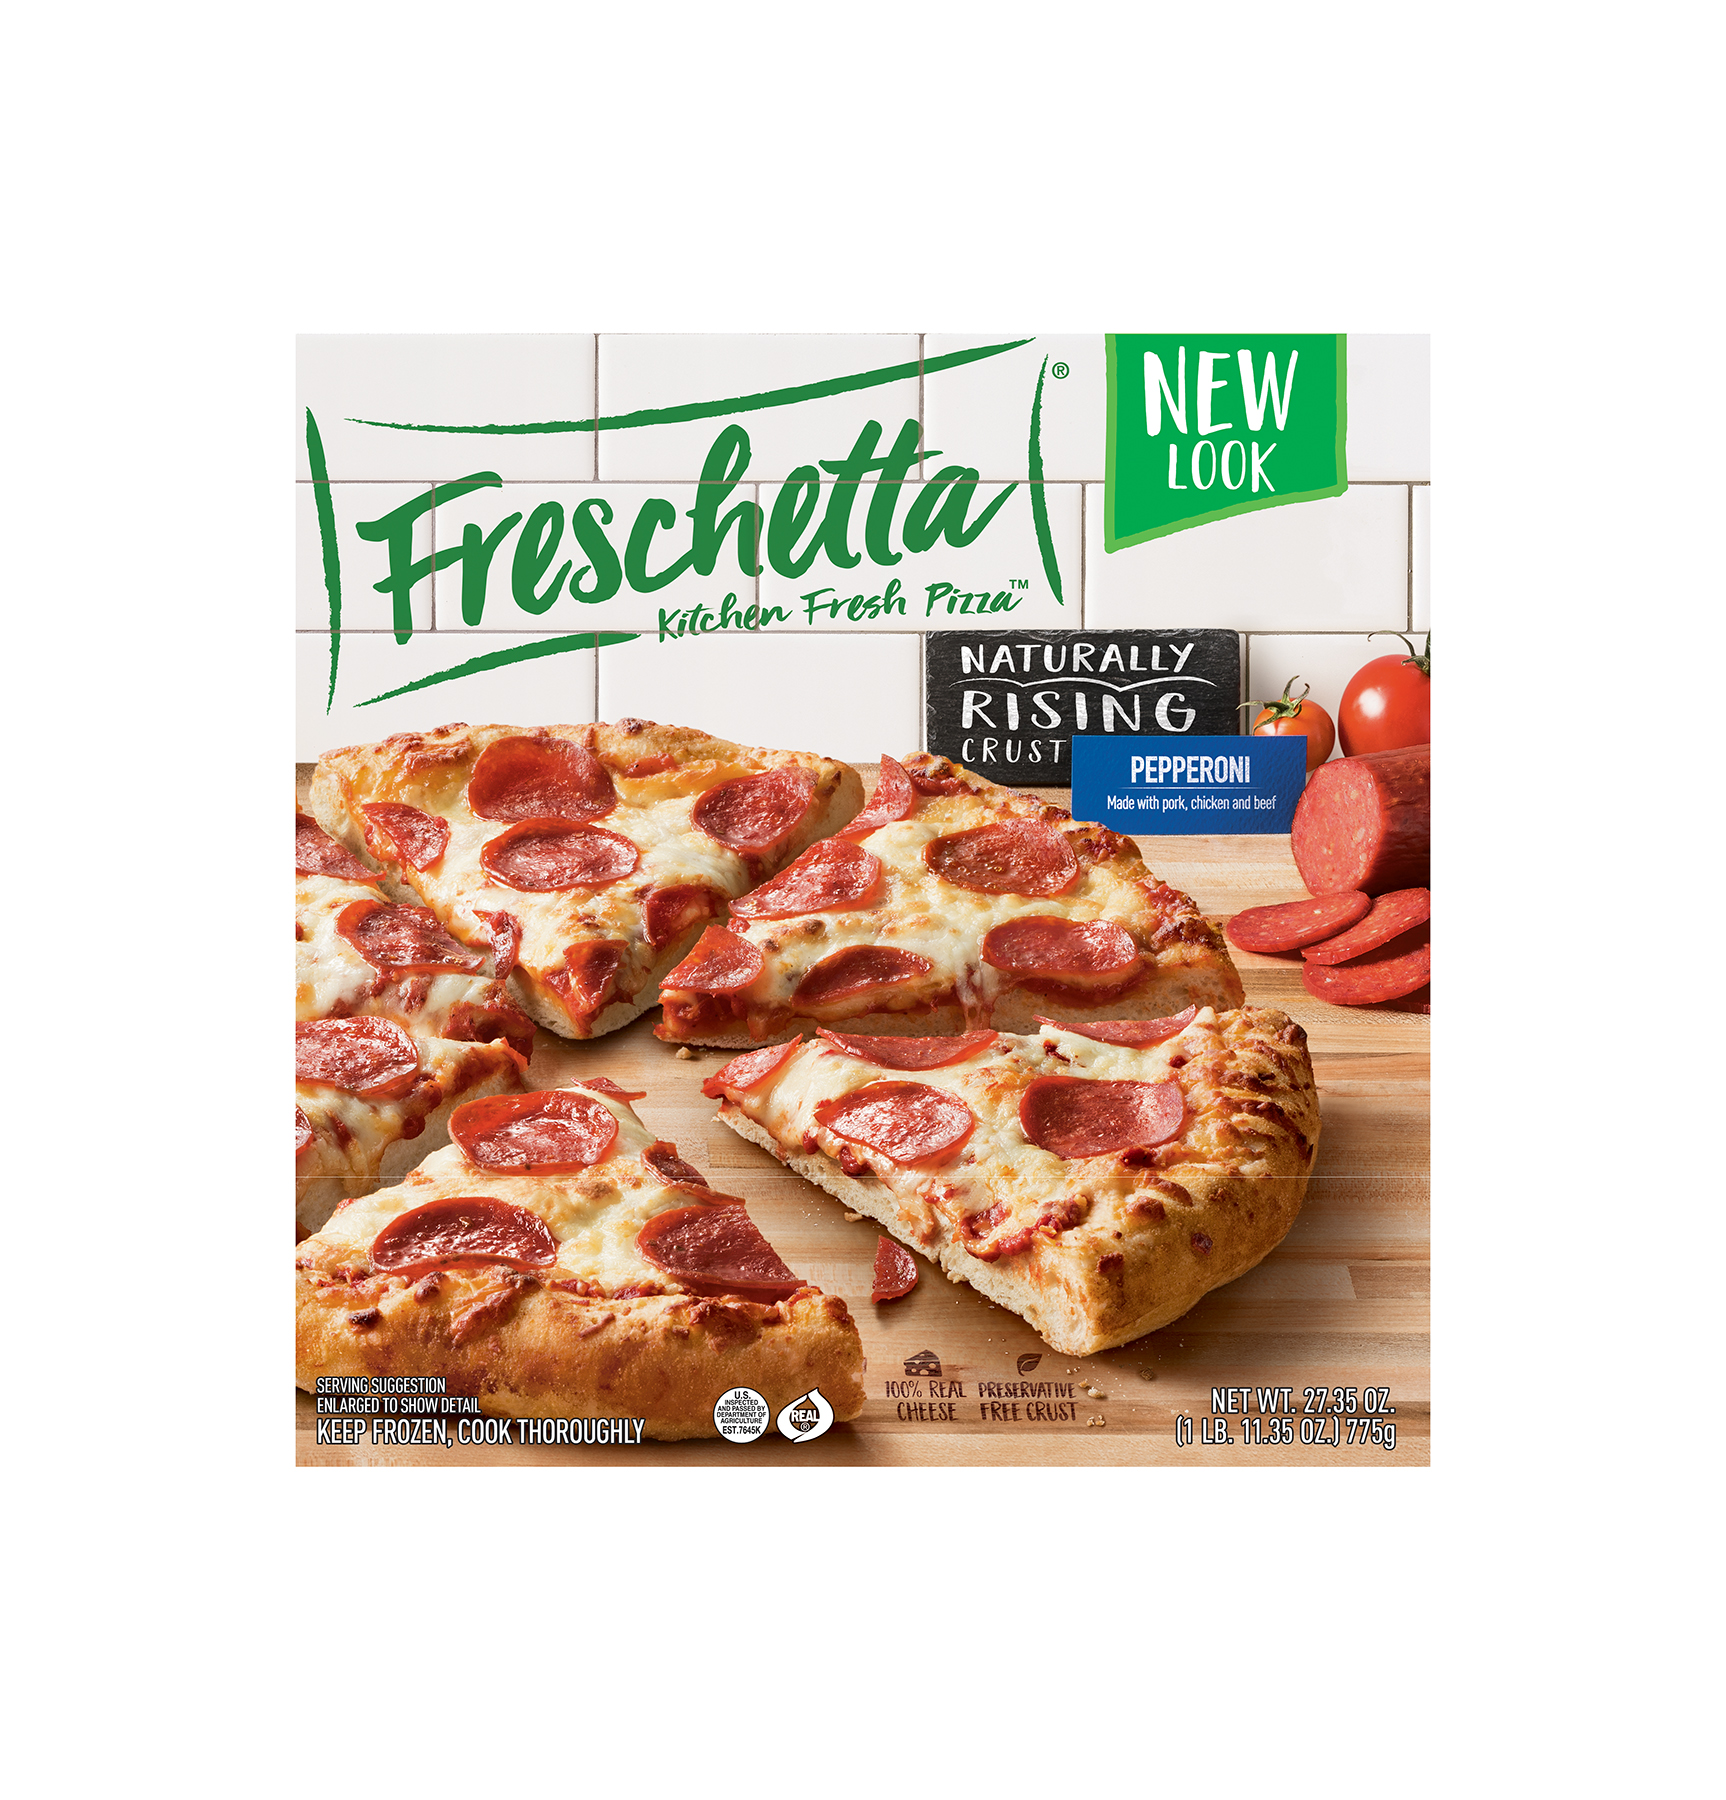 Freschetta Naturally Rising Crust Pepperoni